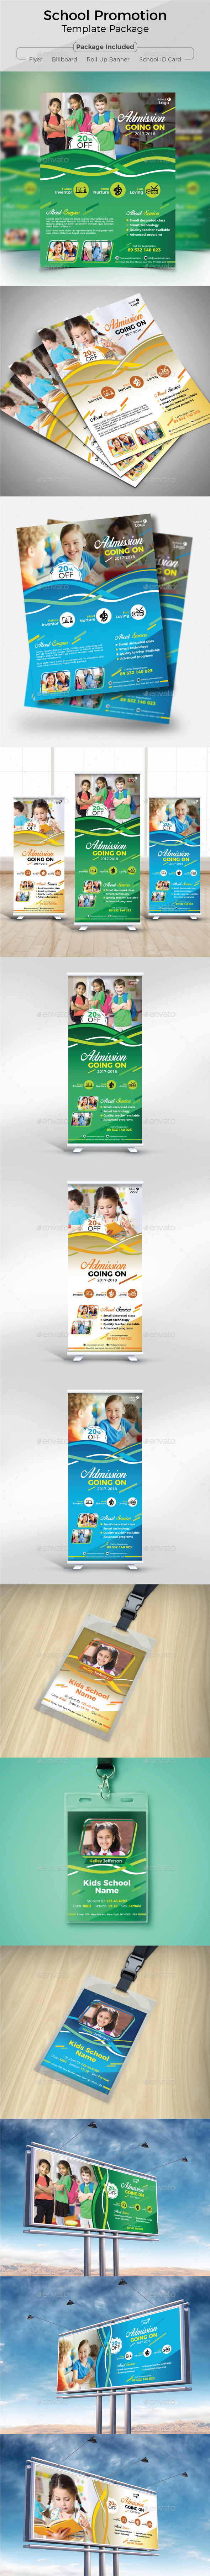 School Promotional Template Package - Flyers Print Templates